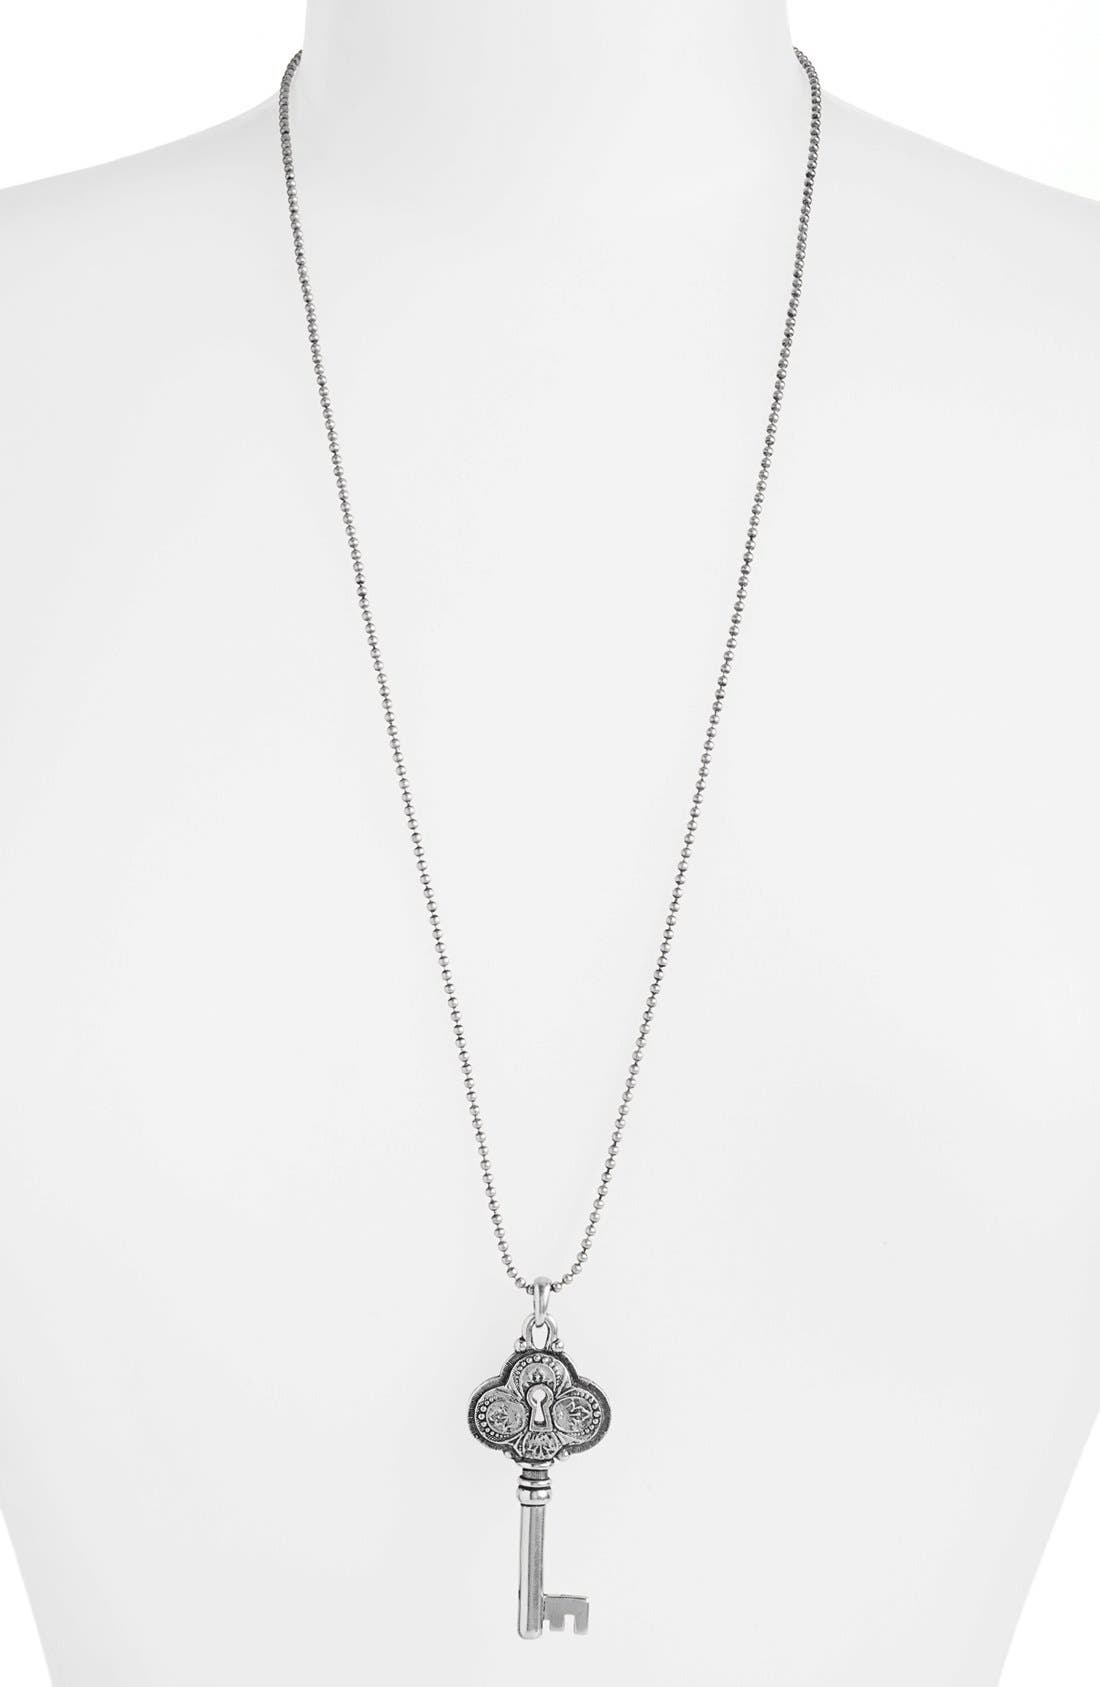 Main Image - Nordstrom 'Antique' Pendant Necklace